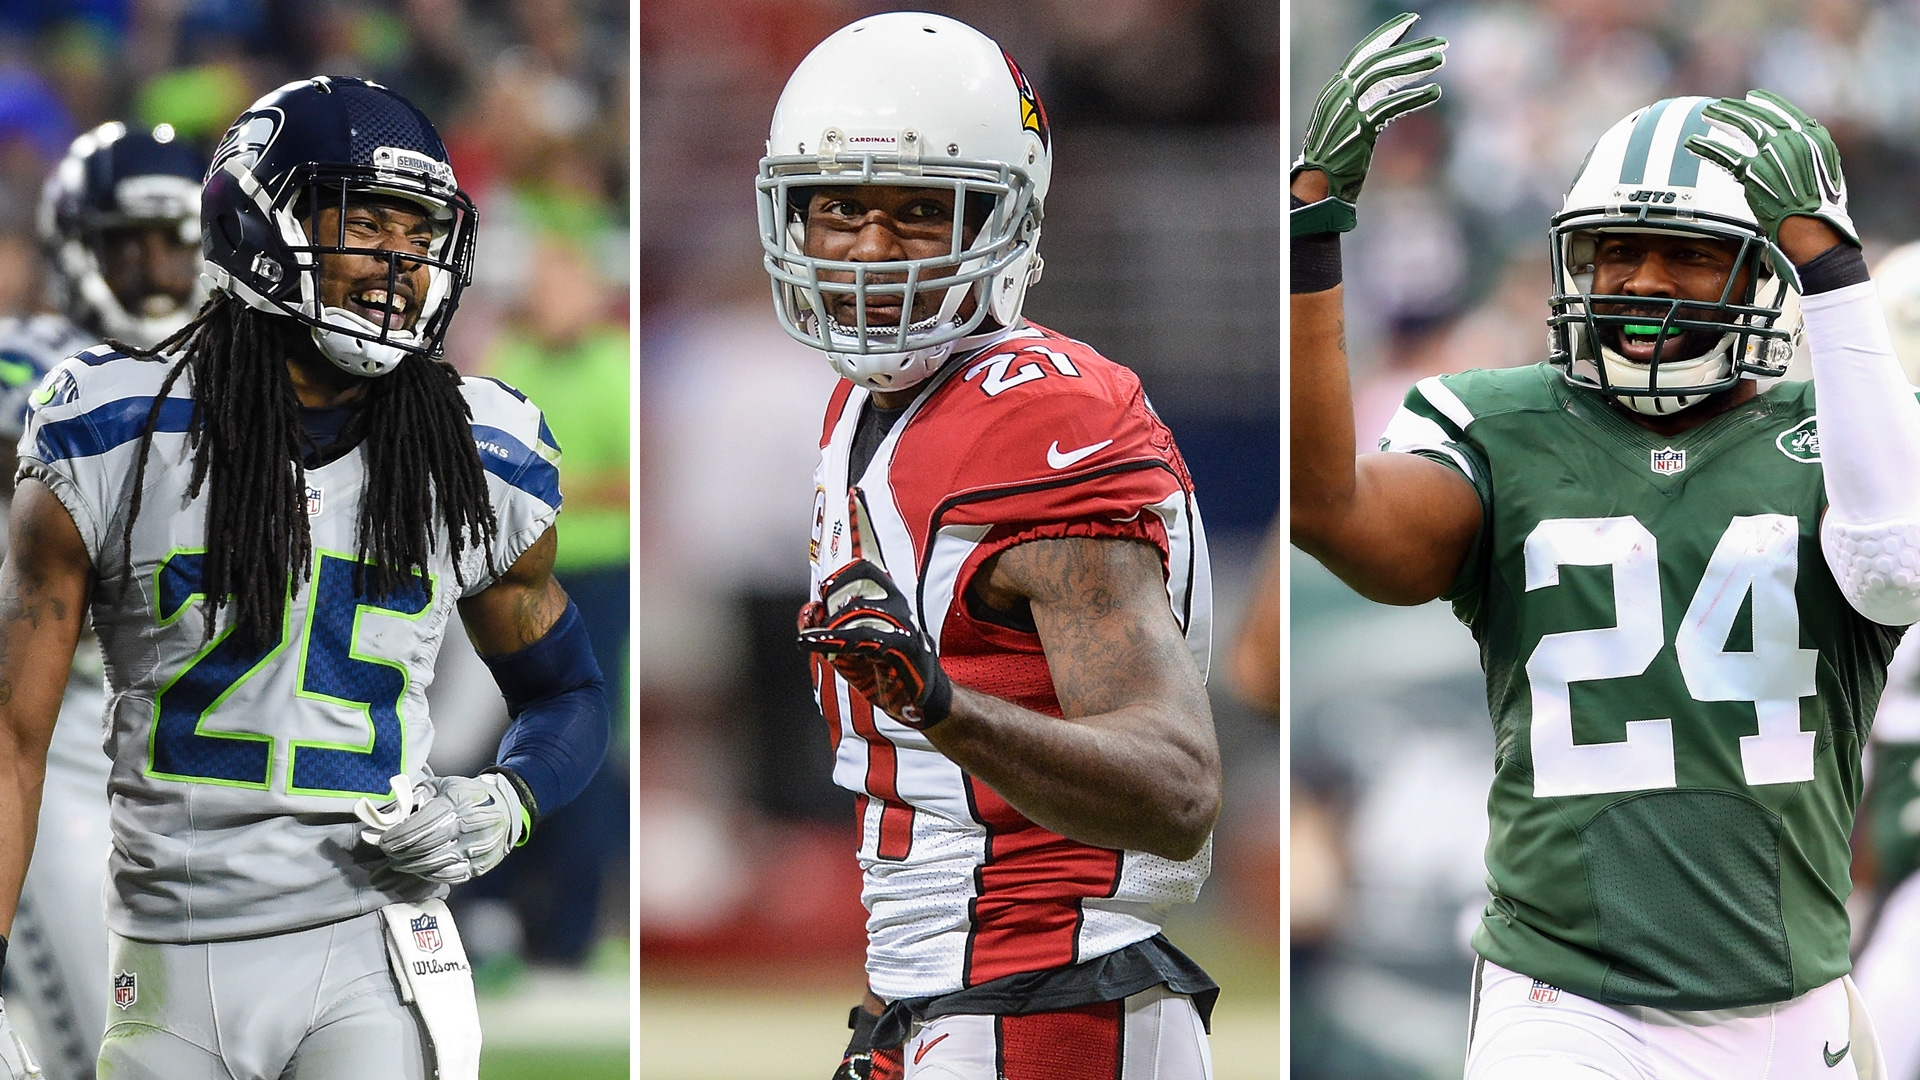 Split-sherman-peterson-revis-072016-getty-ftrjpg_1vacydr9ytqk61xrsoha23ttdb